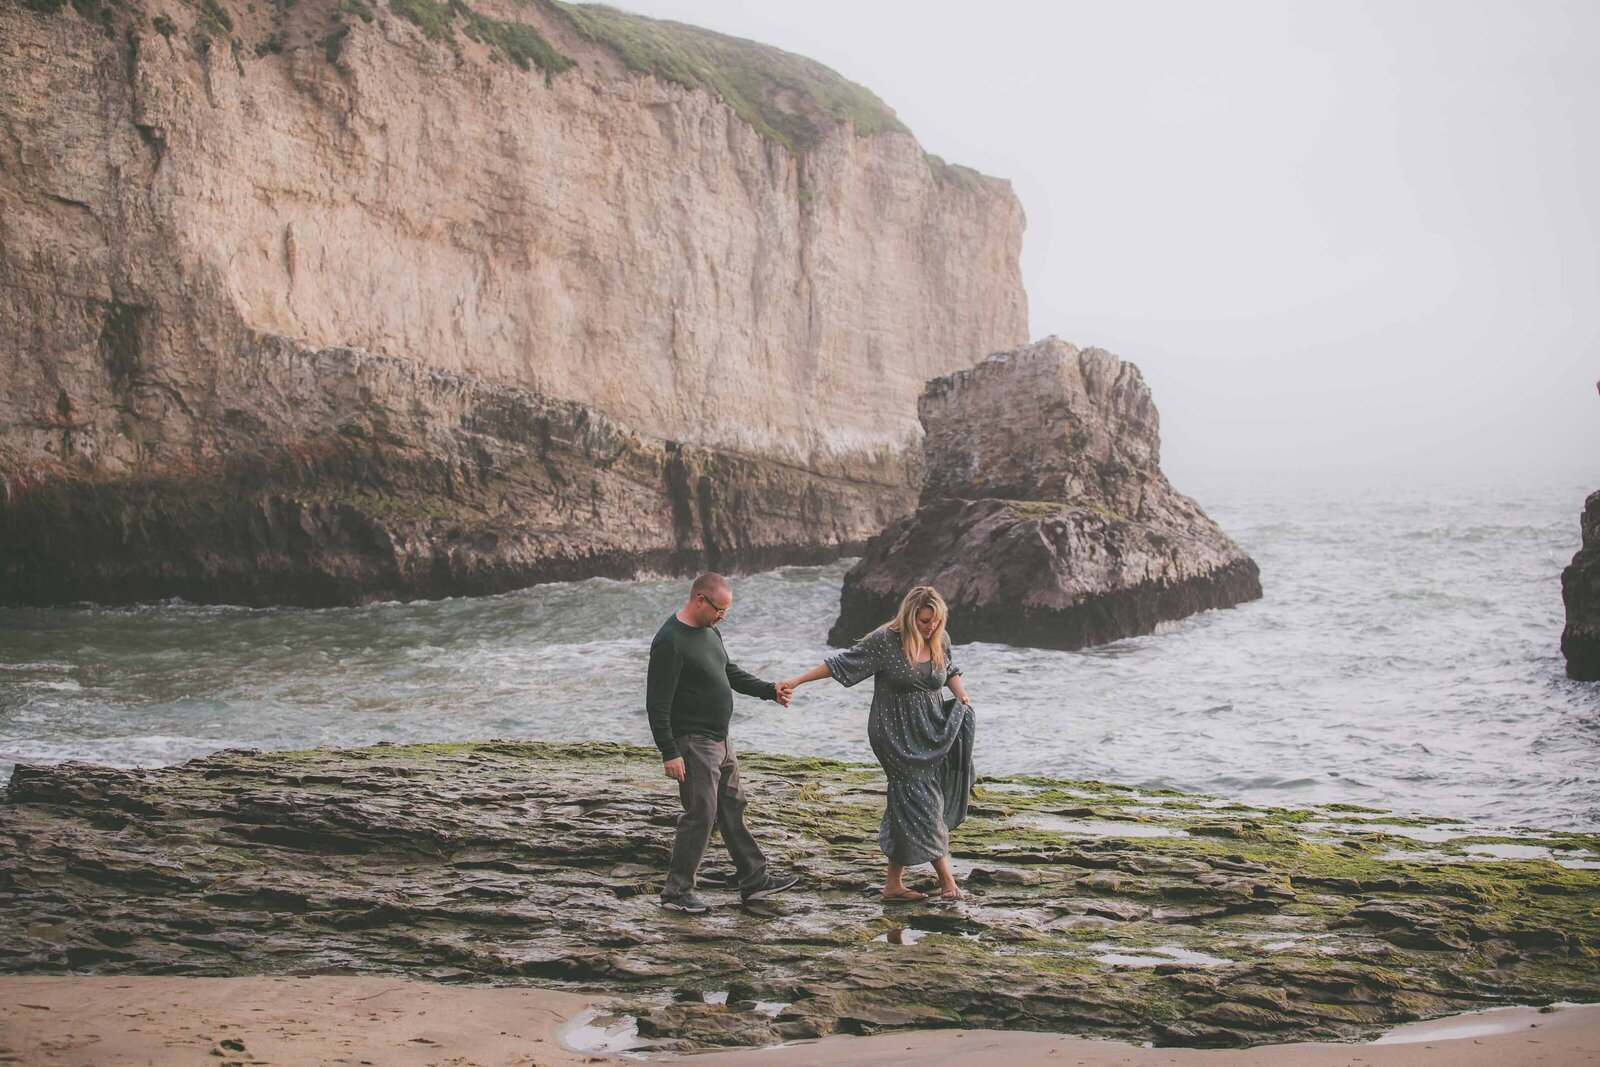 Couple hold hands and walk among rocky shoreline.